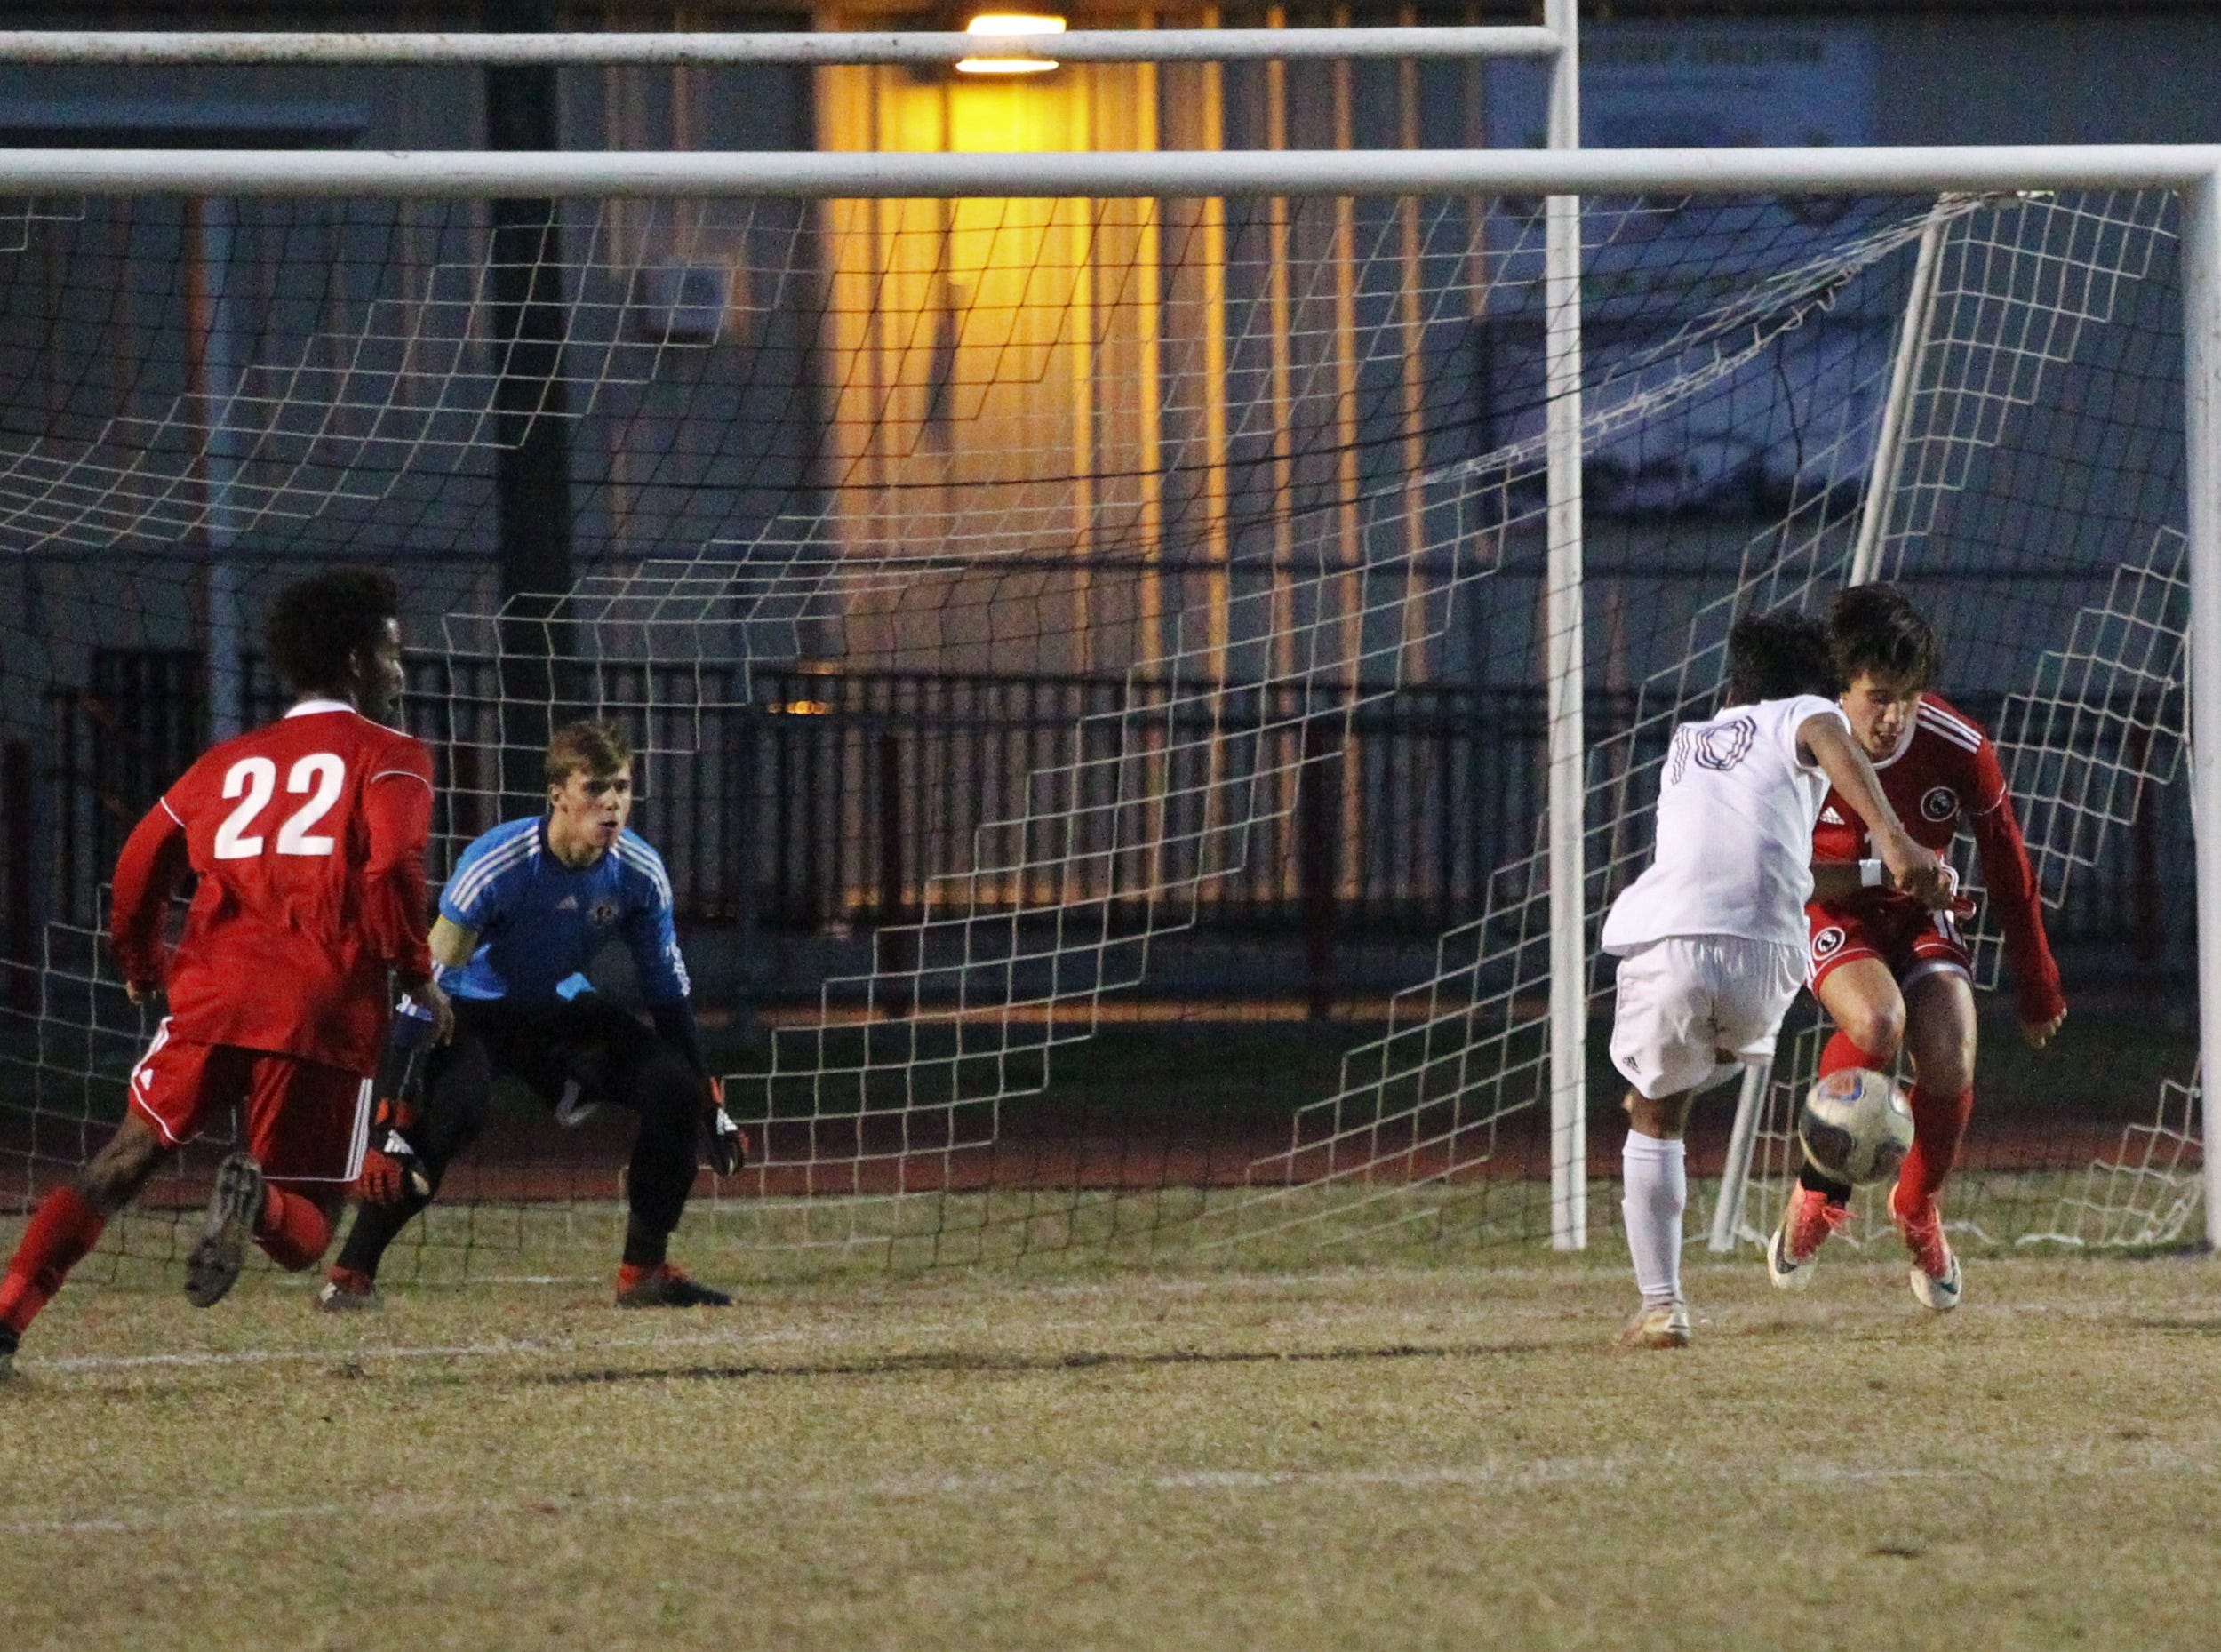 Leon's Patrick Campo saves a shot on goal as the Lions' boys soccer team beat Niceville 1-0 in a Region 1-4A semifinal on Feb. 9, 2019.